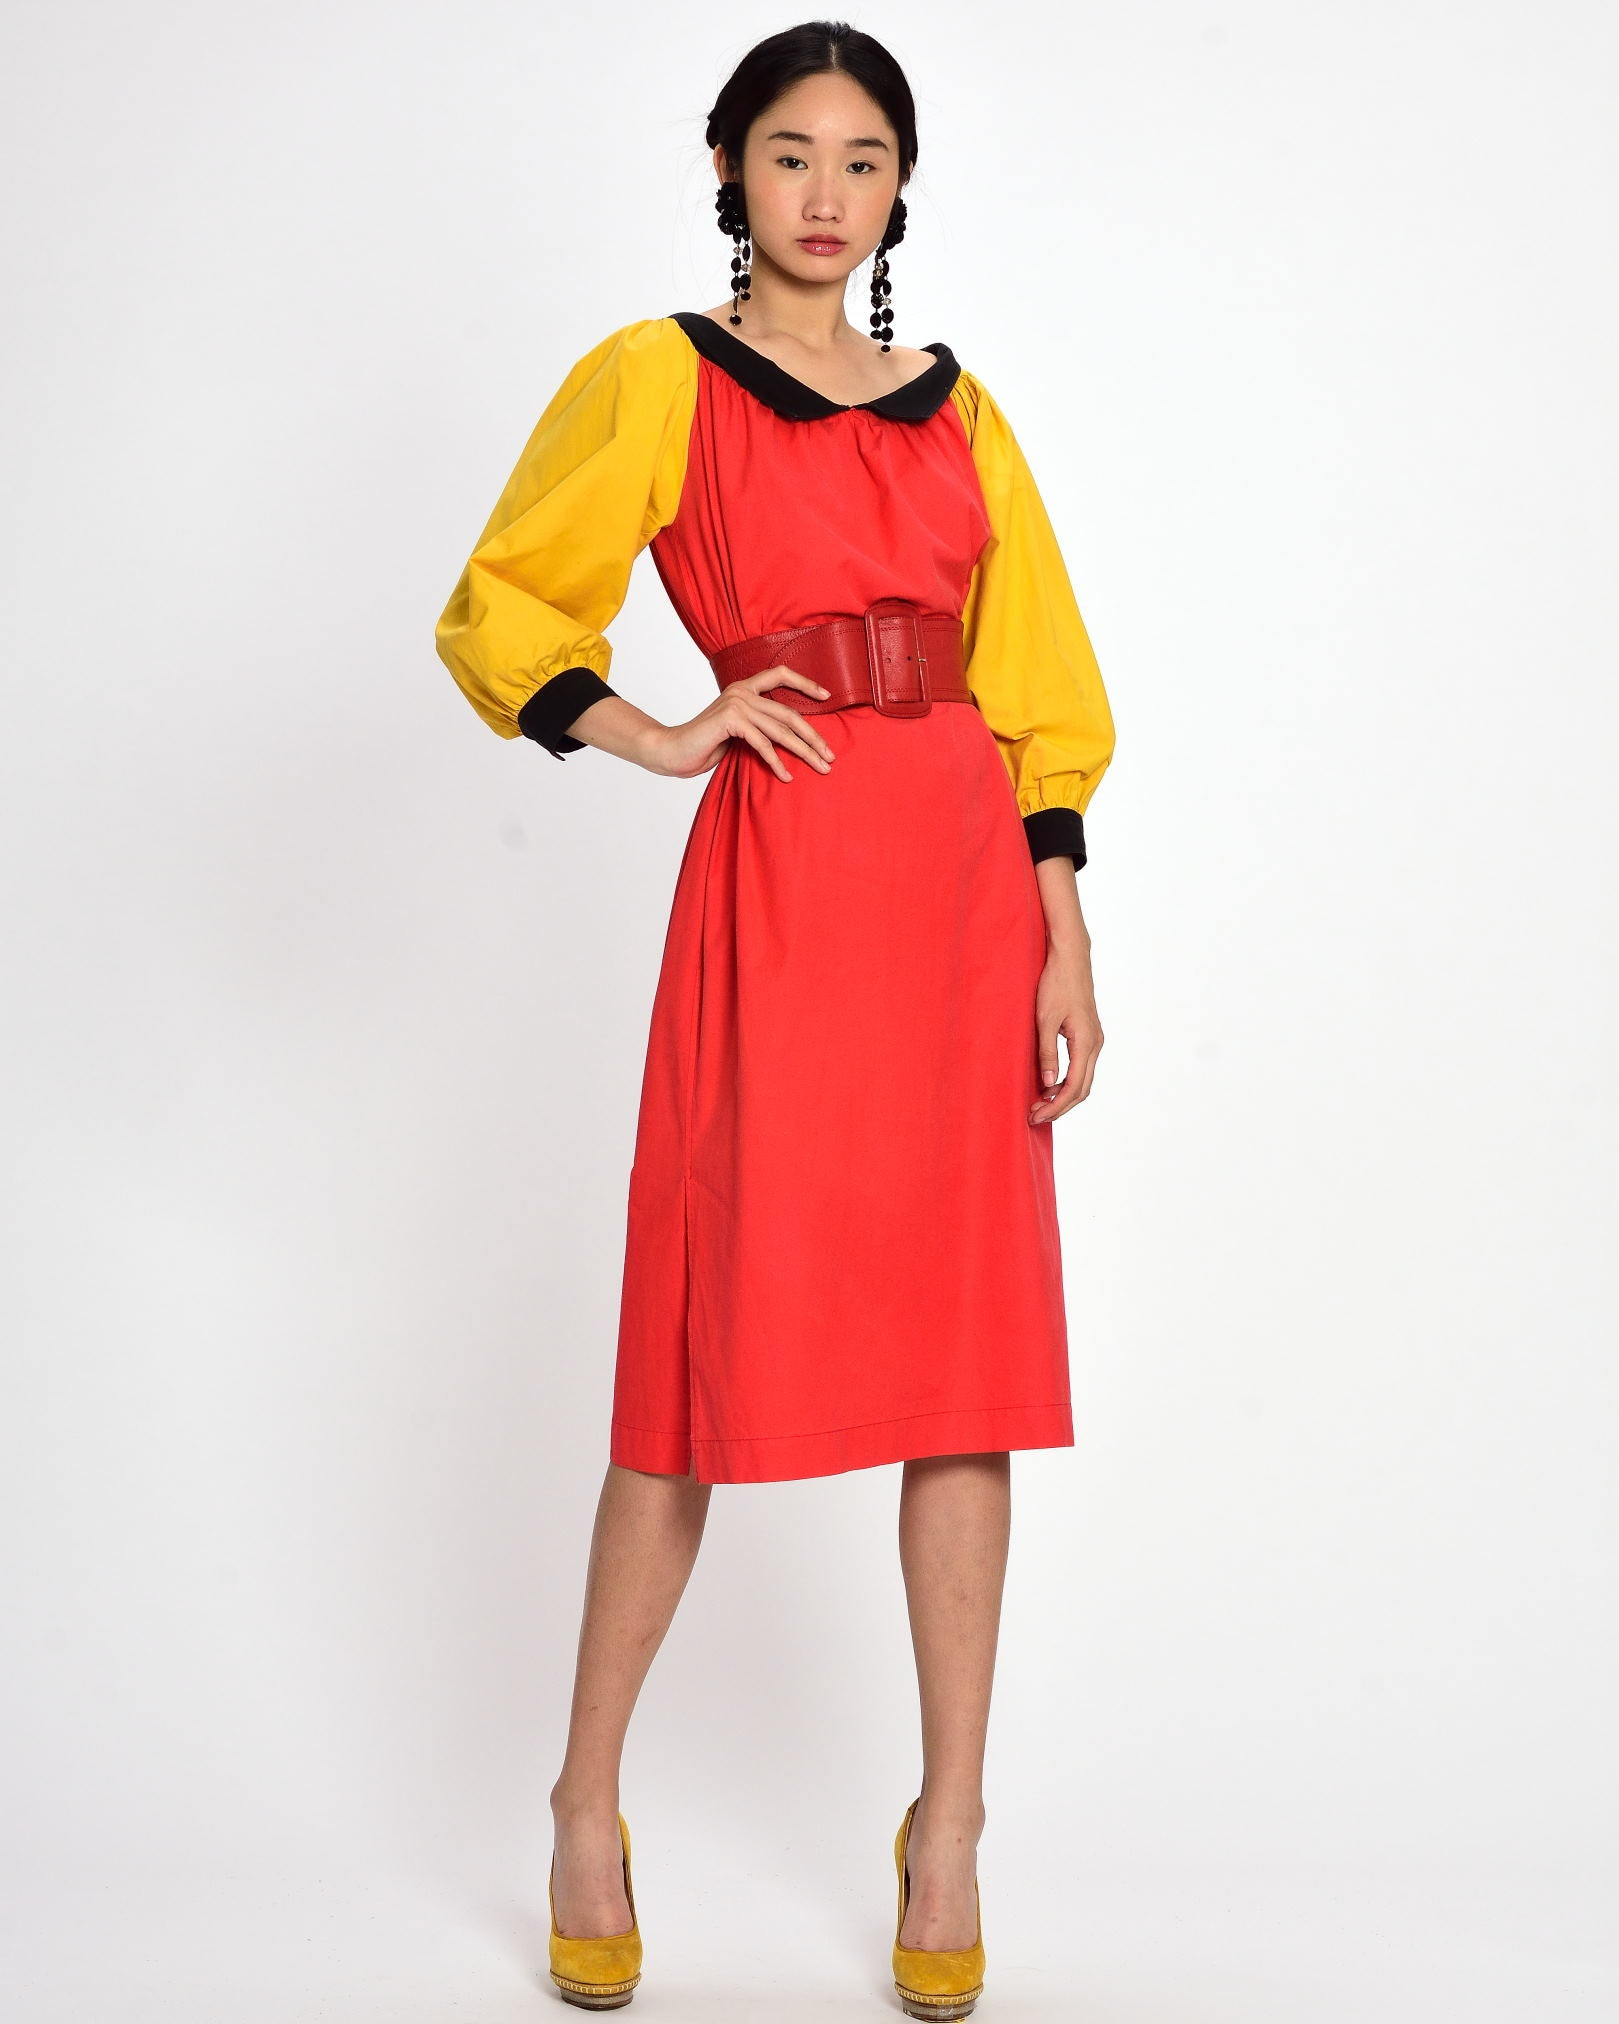 YVES SAINT LAURENT Orange and Yellow Dress